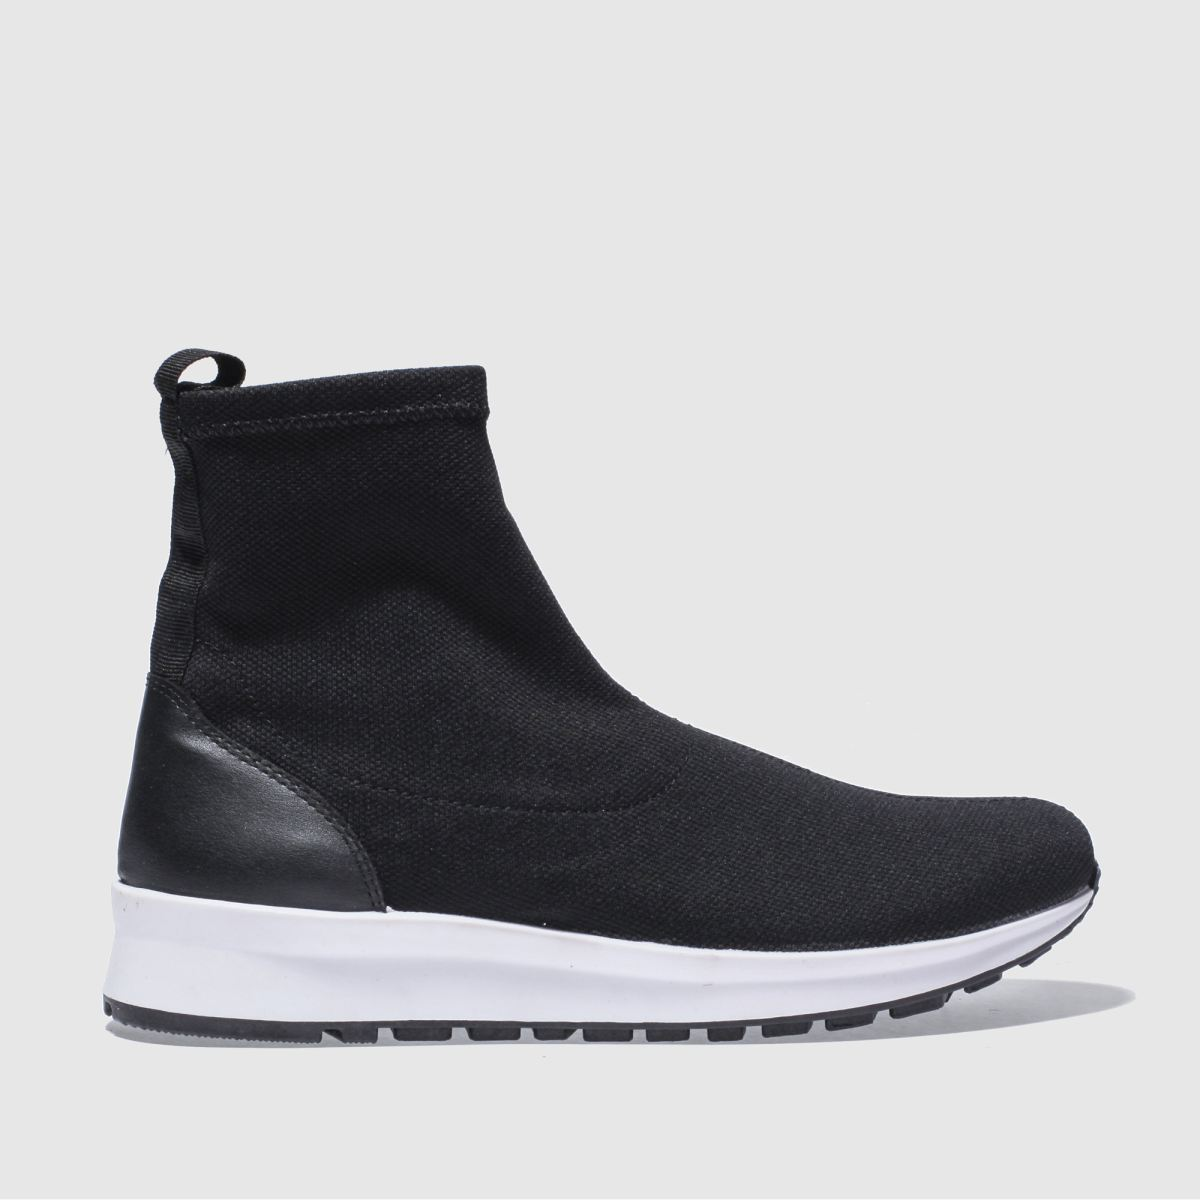 Schuh Black & White Air Time Boots